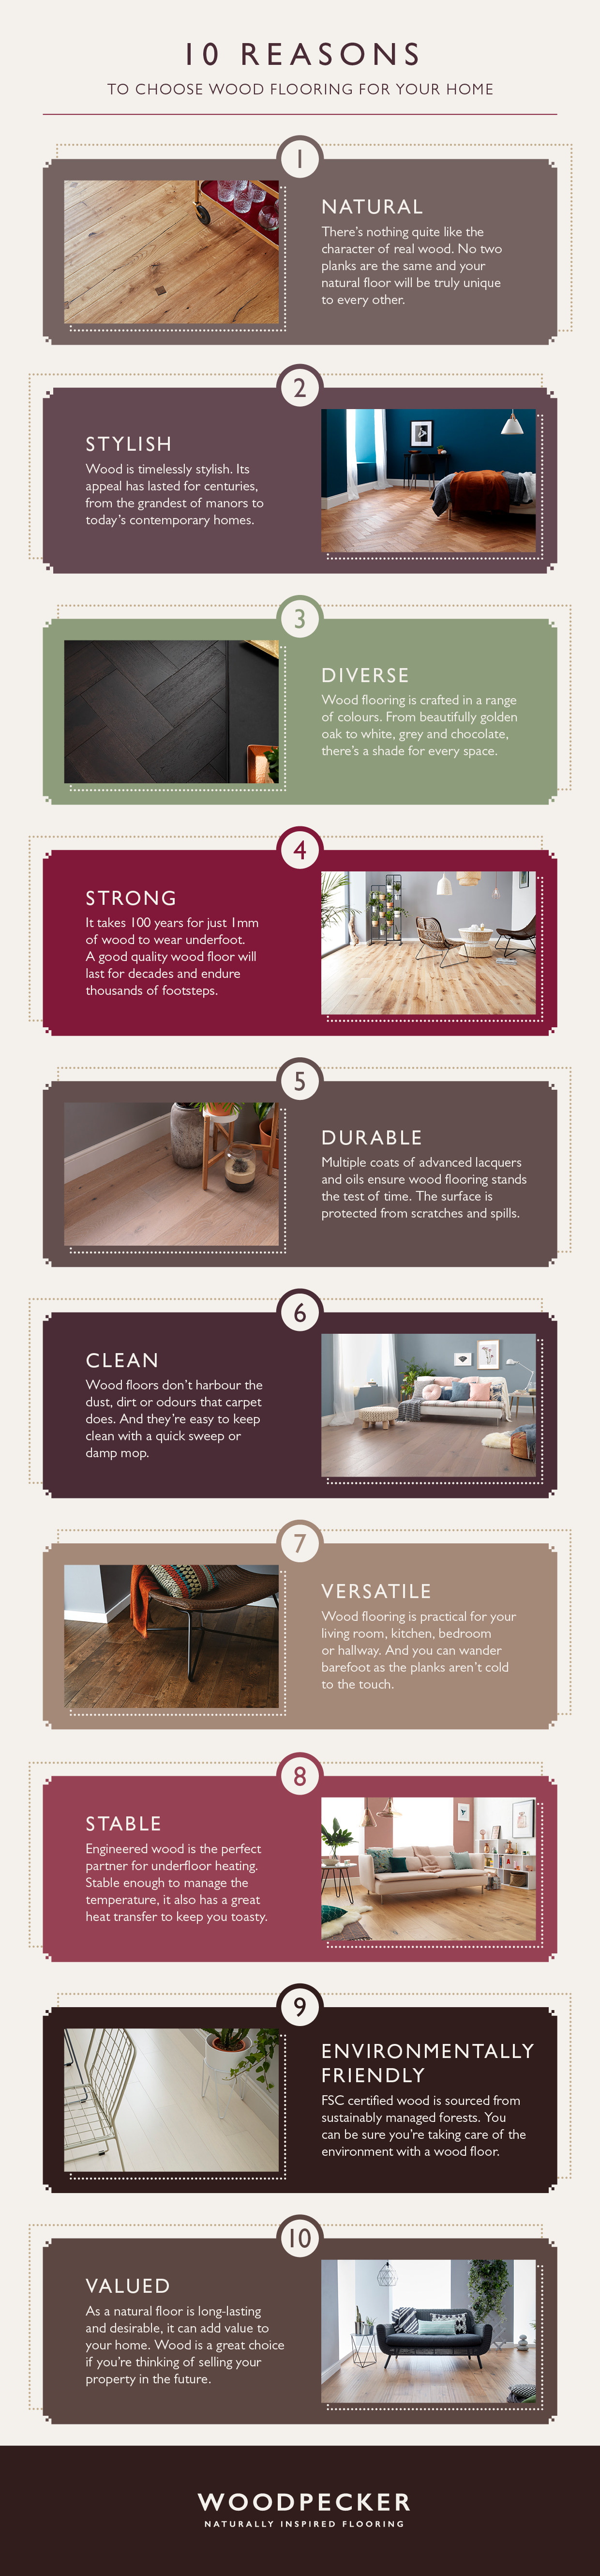 wood flooring 10 reasons to choose